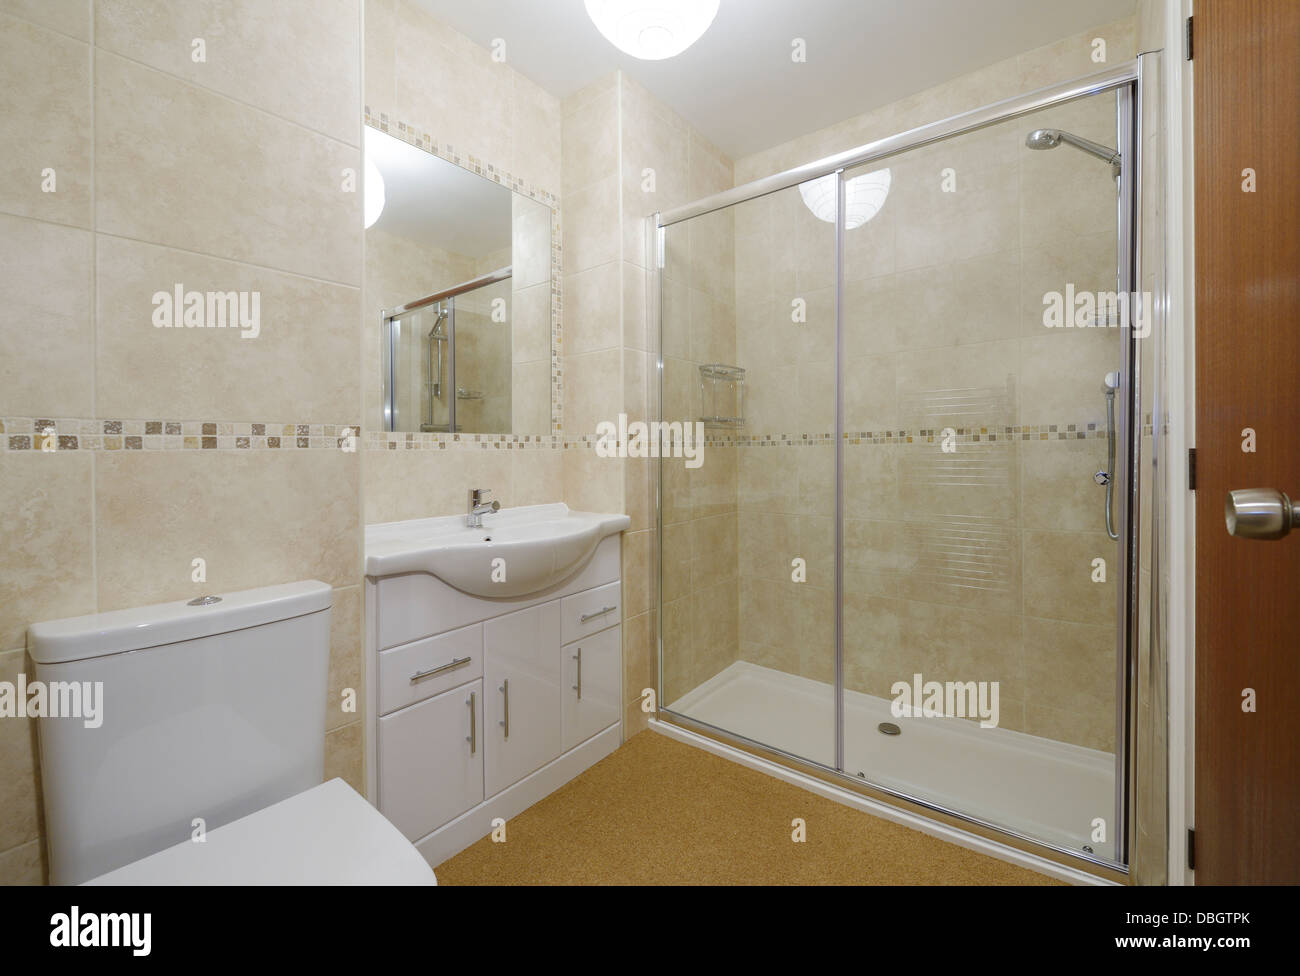 Modern small bathroom with toilet basin and shower - Stock Image